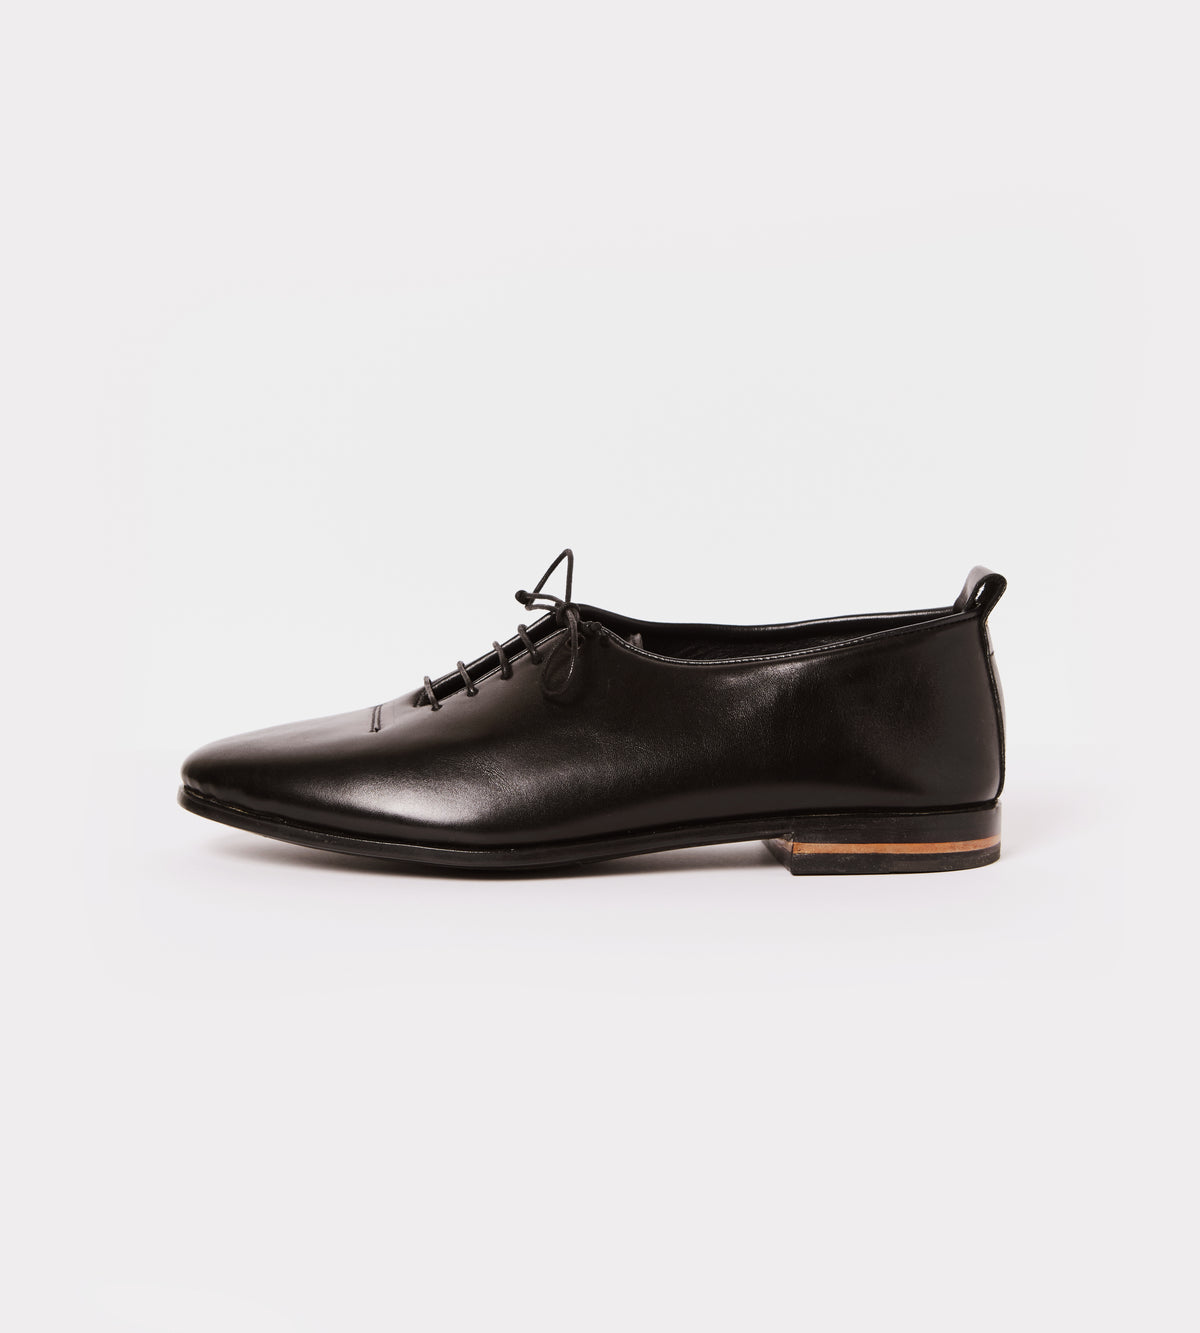 Black calf leather wholecut soft shoe outside view